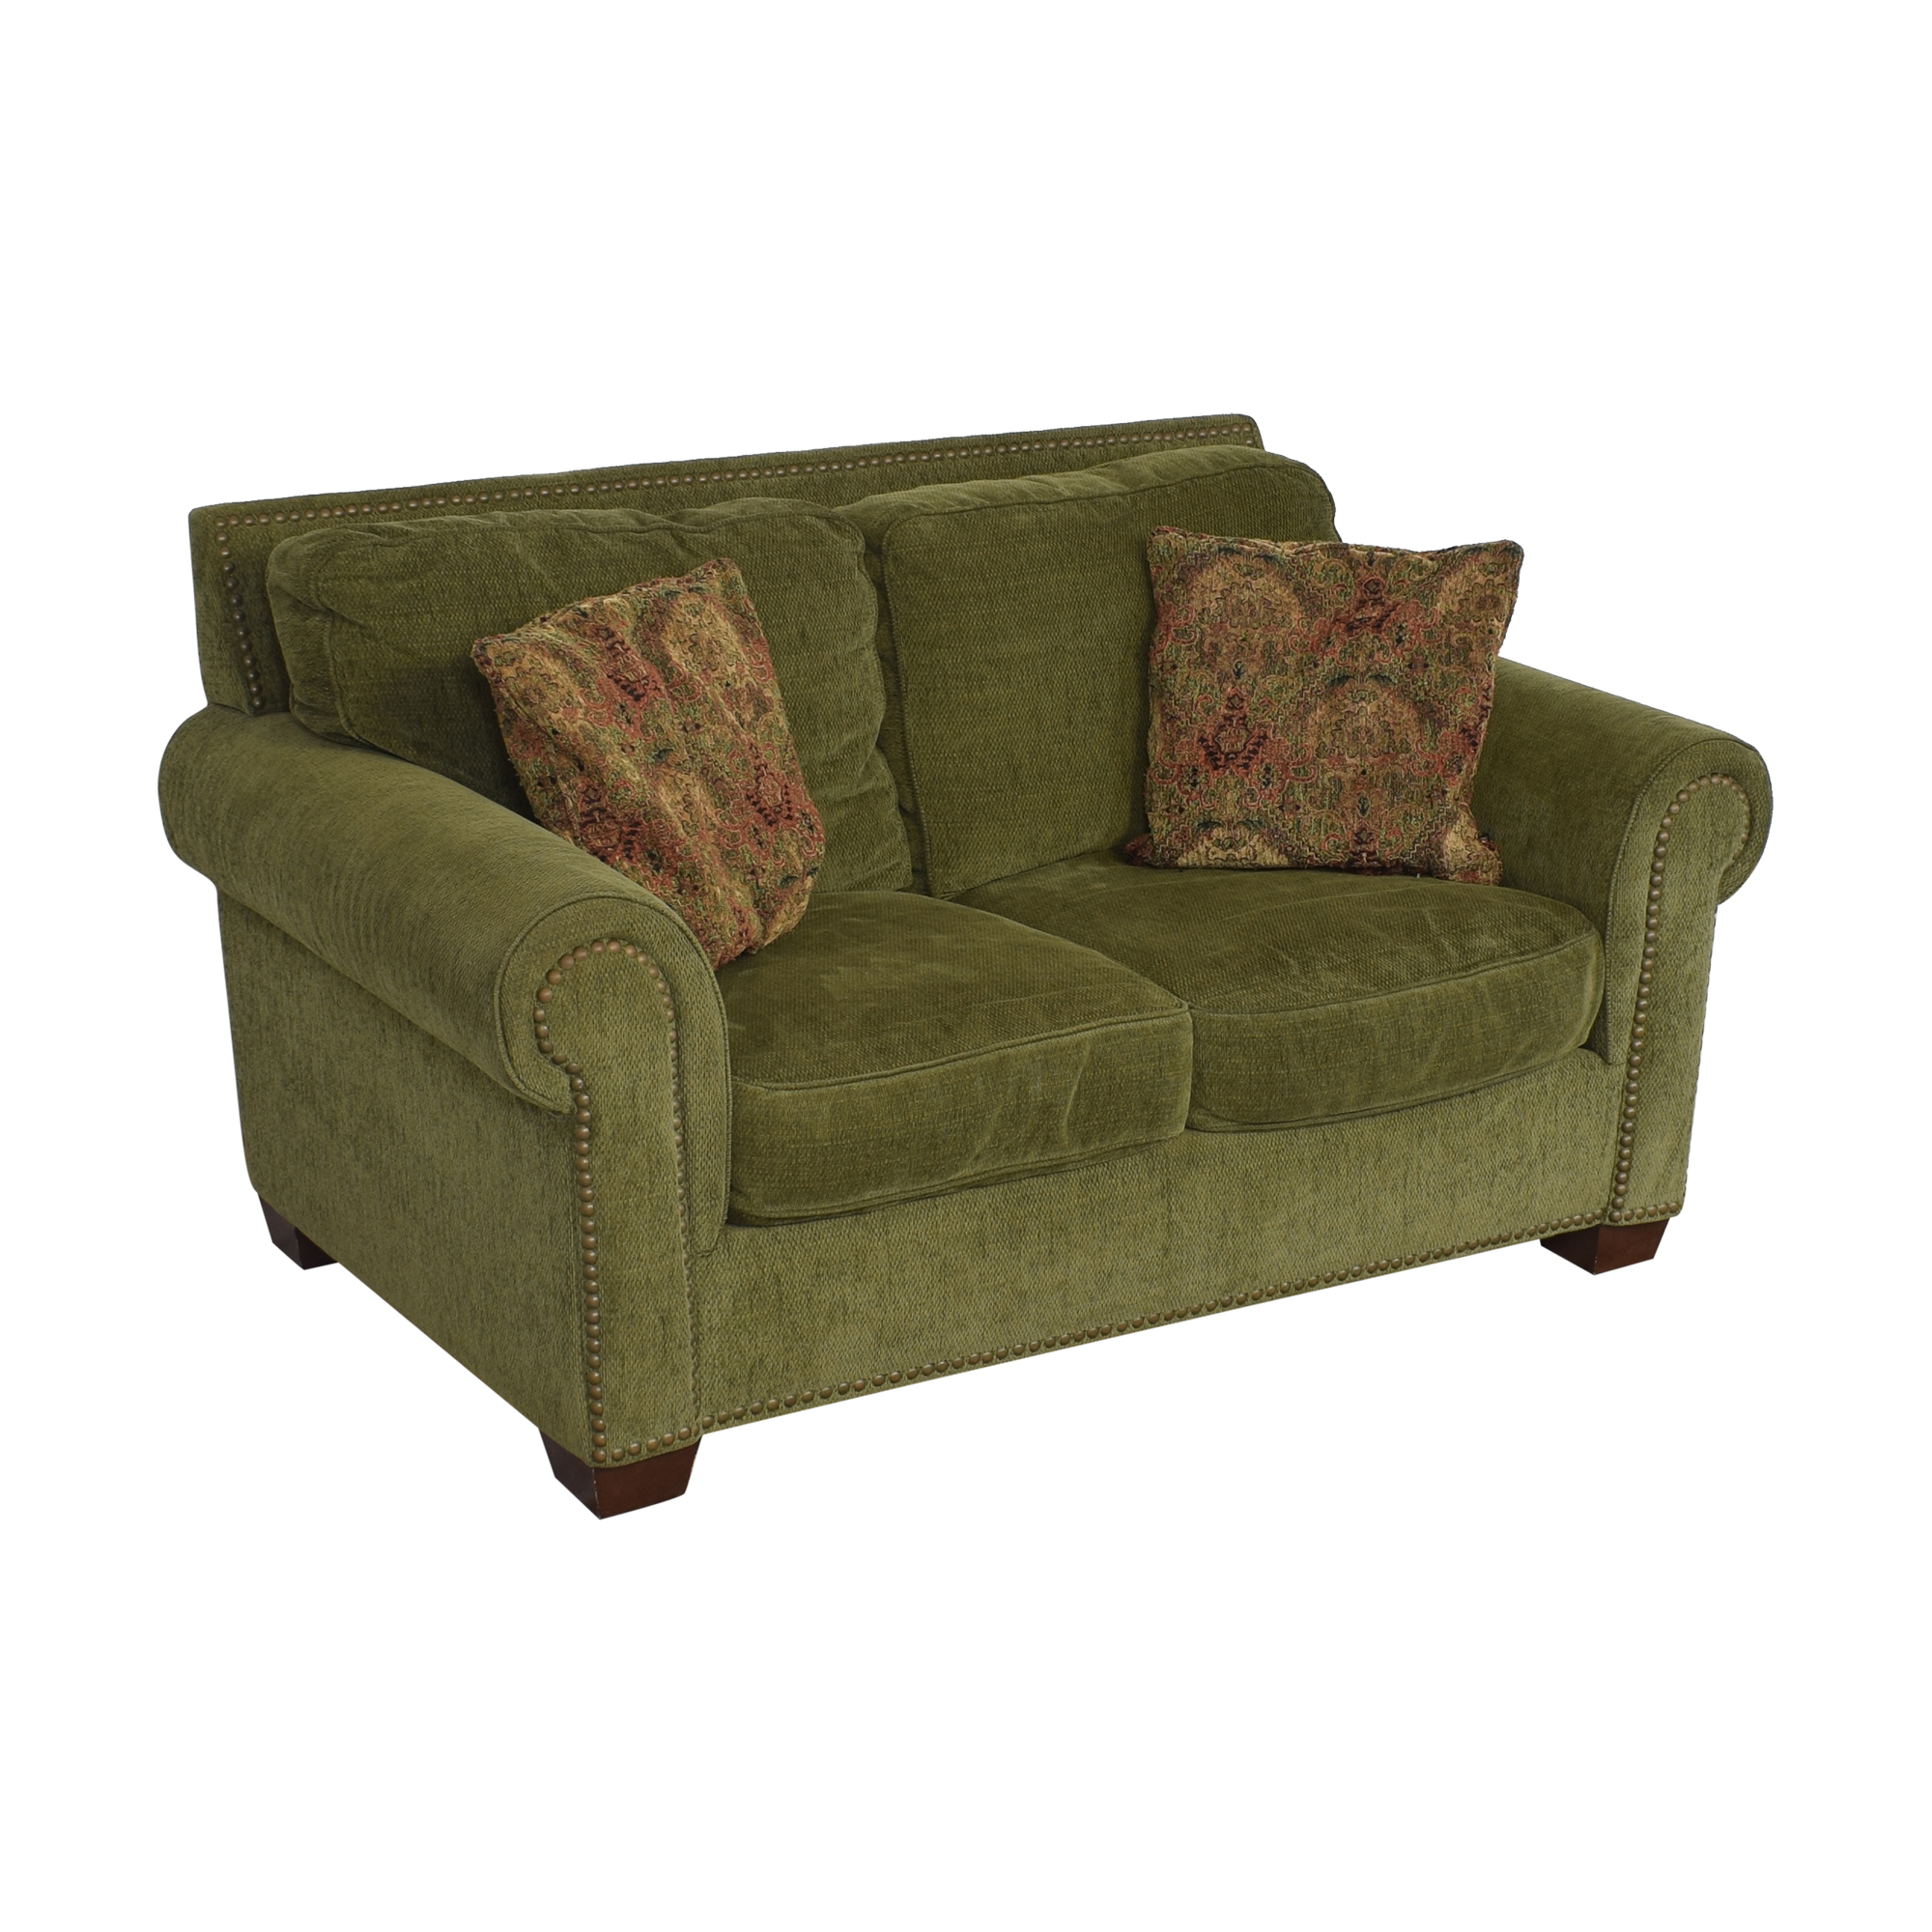 Robinson & Robinson Nailhead Trim Loveseat sale